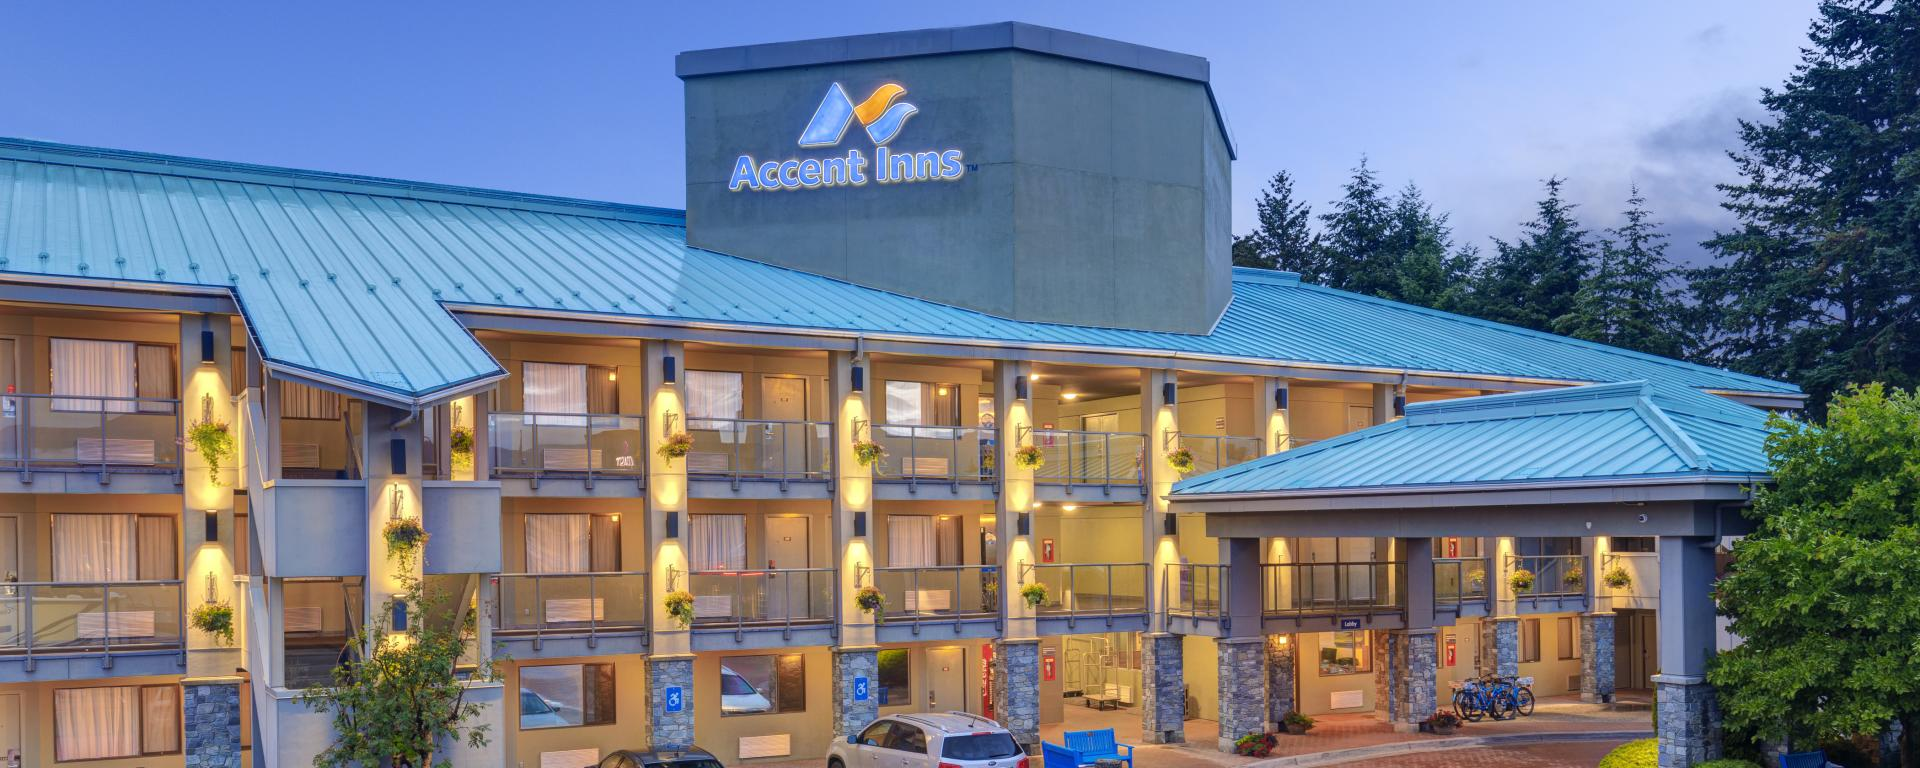 Exterior Image 1 Accent Inns